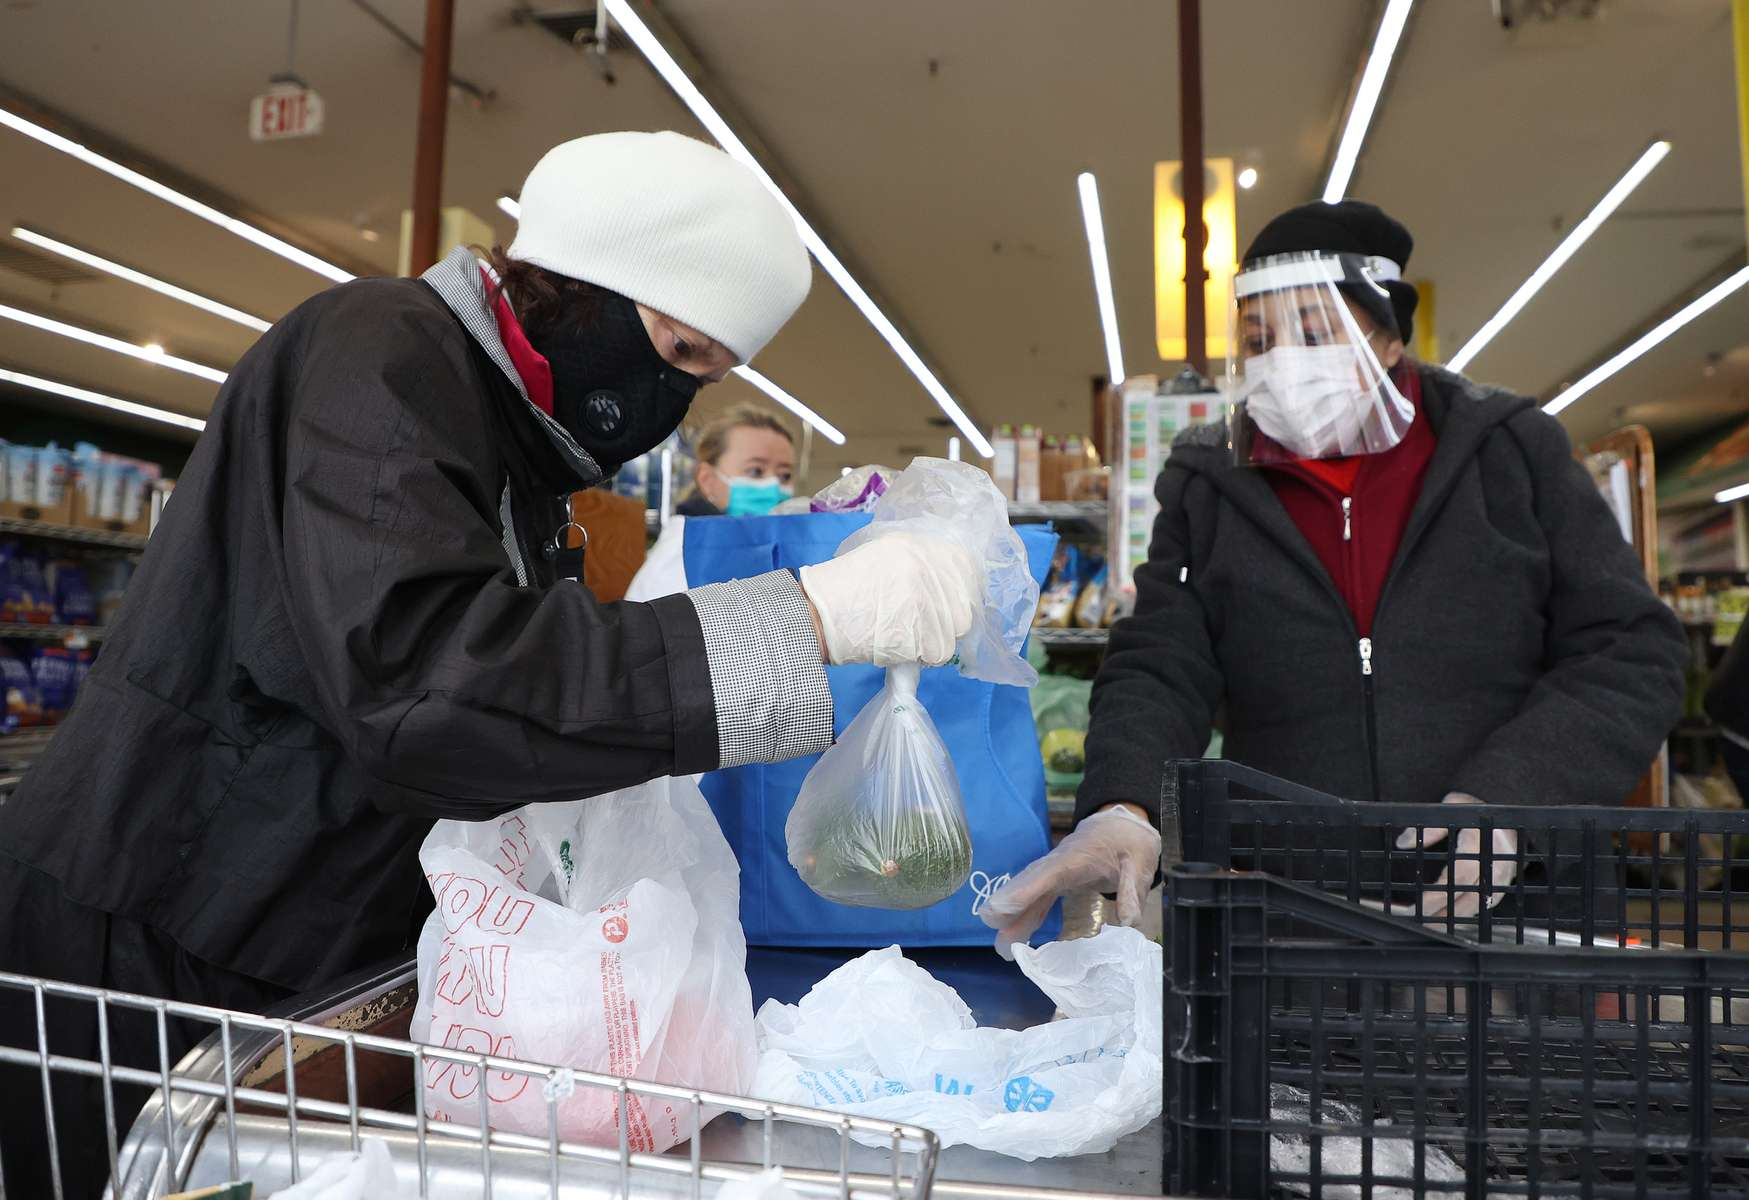 A shopper and cashier both wear masks, gloves and the cashier also has on a plastic visor at the checkout station Pat's Farms grocery store on March 31, 2020 in Merrick, New York.   The World Health Organization declared coronavirus (COVID-19) a global pandemic on March 11th.